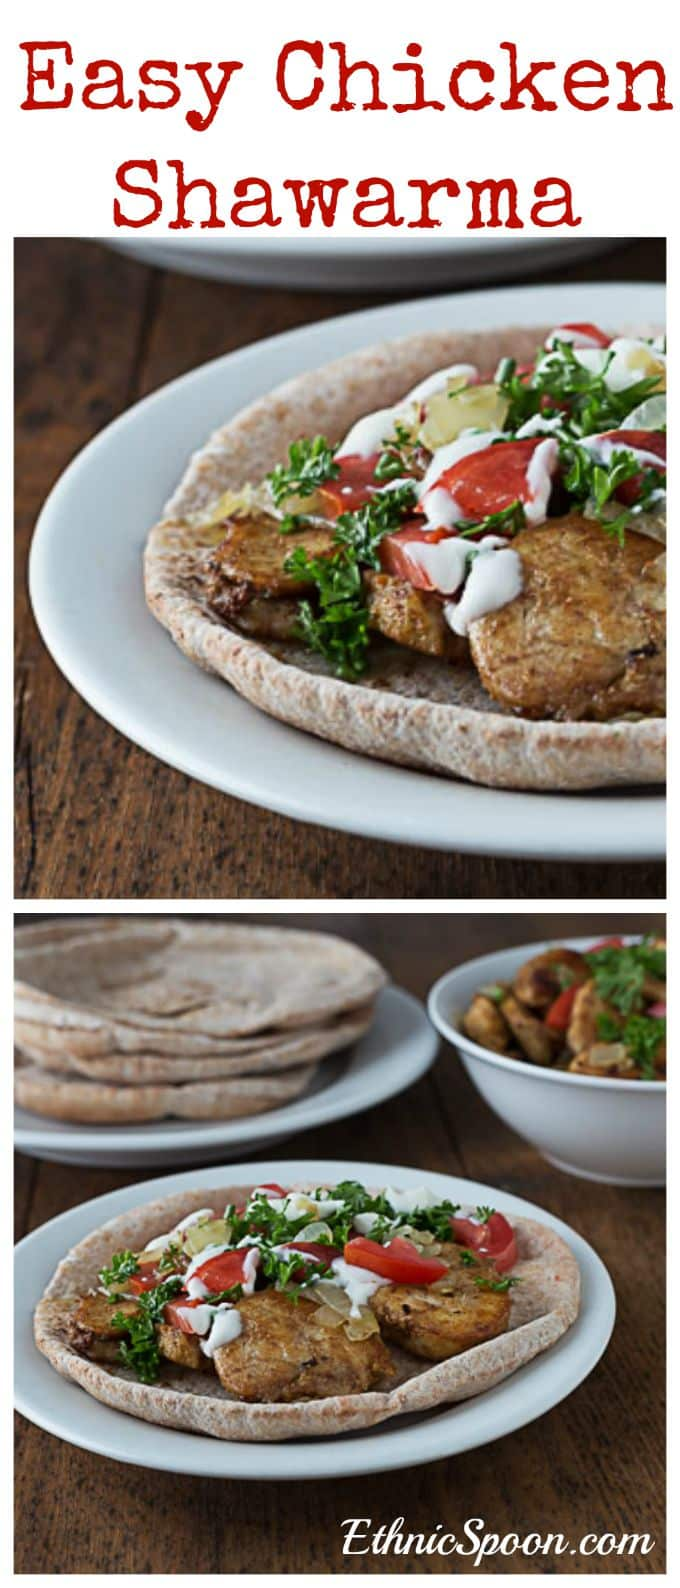 Here is a non-grilled version of chicken shawarma. A super easy Middle Eastern dish with lots of unique flavors. | ethnicspoon.com